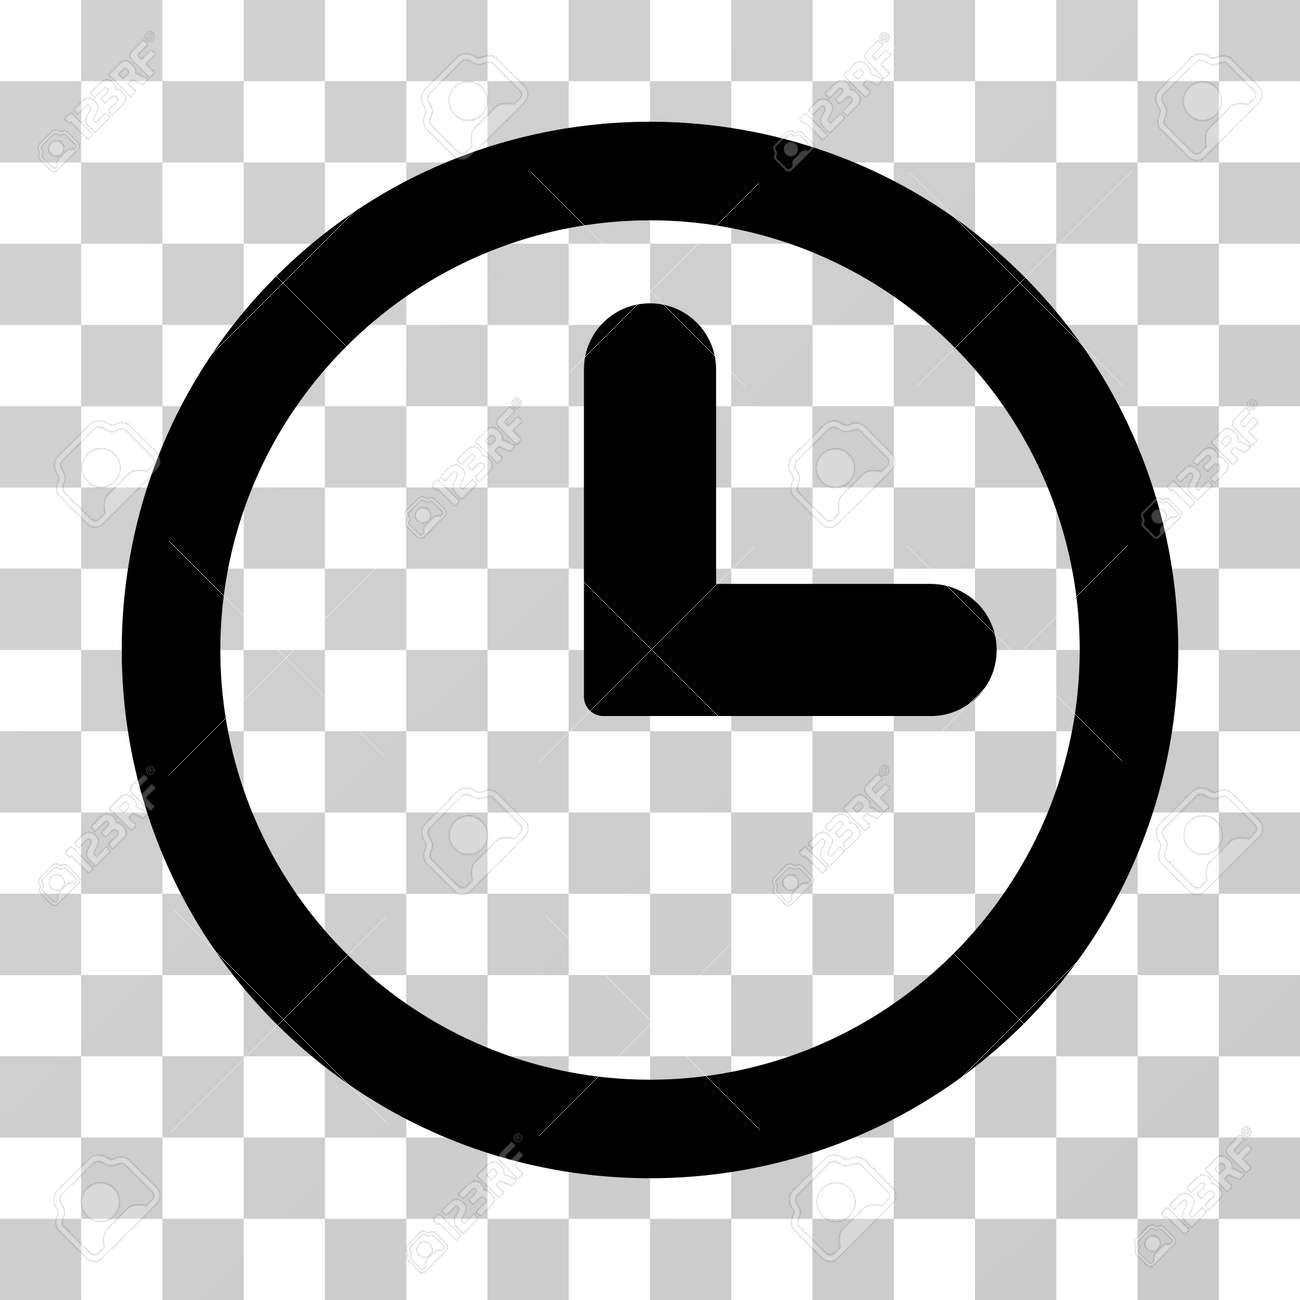 clock vector icon illustration style is flat iconic black symbol rh 123rf com clock icon vector free download clock icon vector png